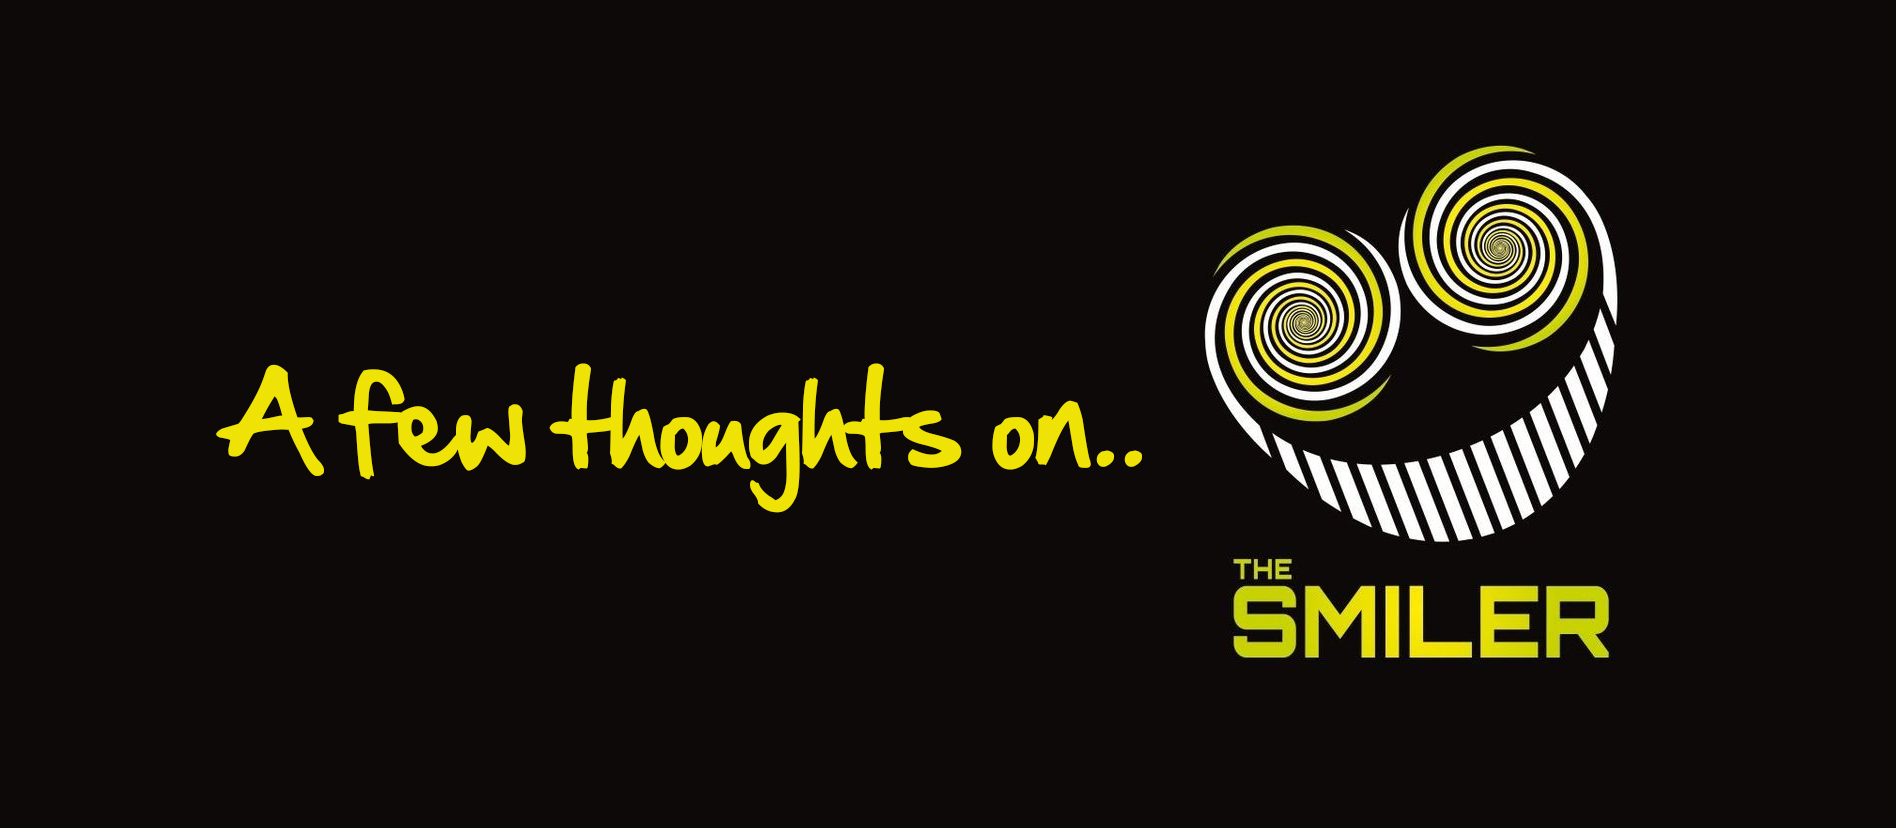 few thoughts on The Smiler at Alton Towers - Kip Hakes